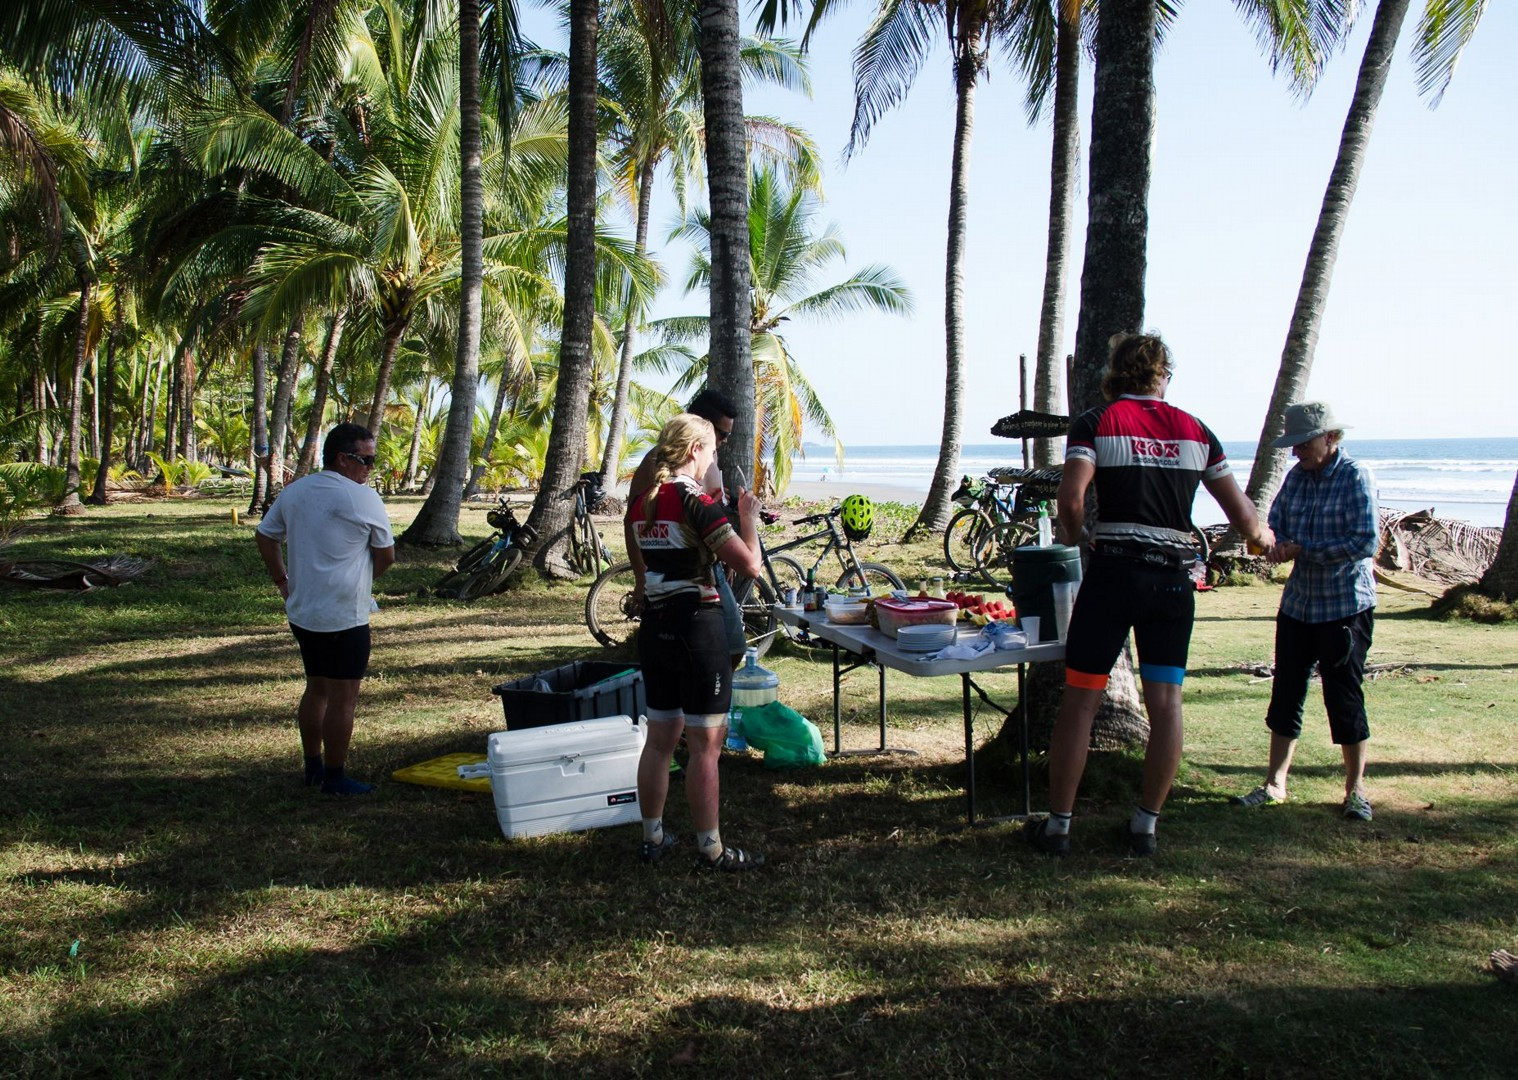 skedaddle-guides-costa-rica-family-cycling-holiday.jpg - Costa Rica - Volcanoes and Valleys - Family Cycling